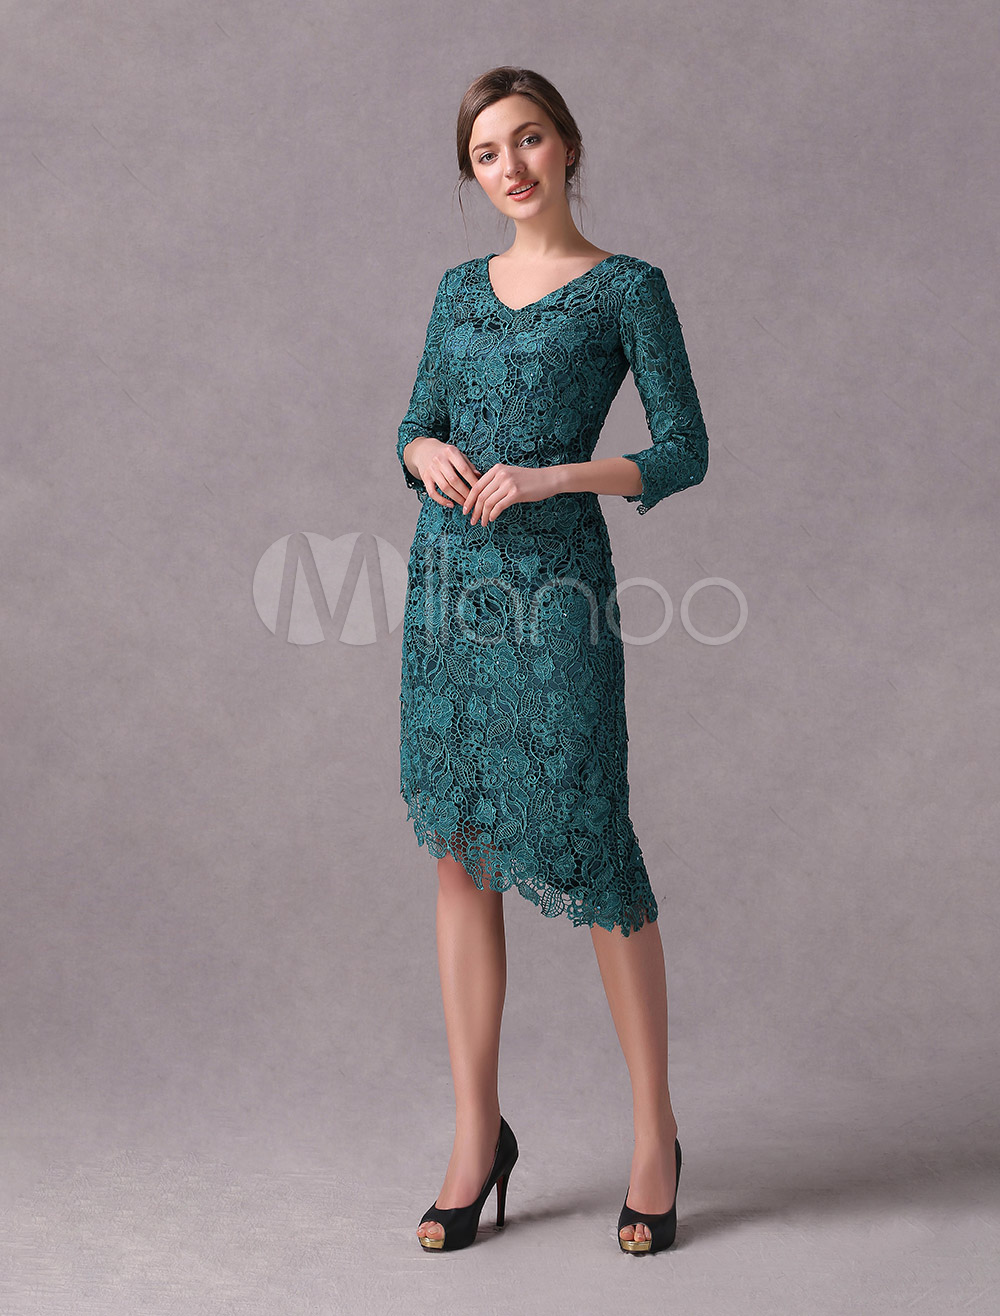 Wedding Guest Dresses Lace Dark Green V Neck Mother Of The Bride Dress Asymmetrical Sheath Cocktail Party Dress